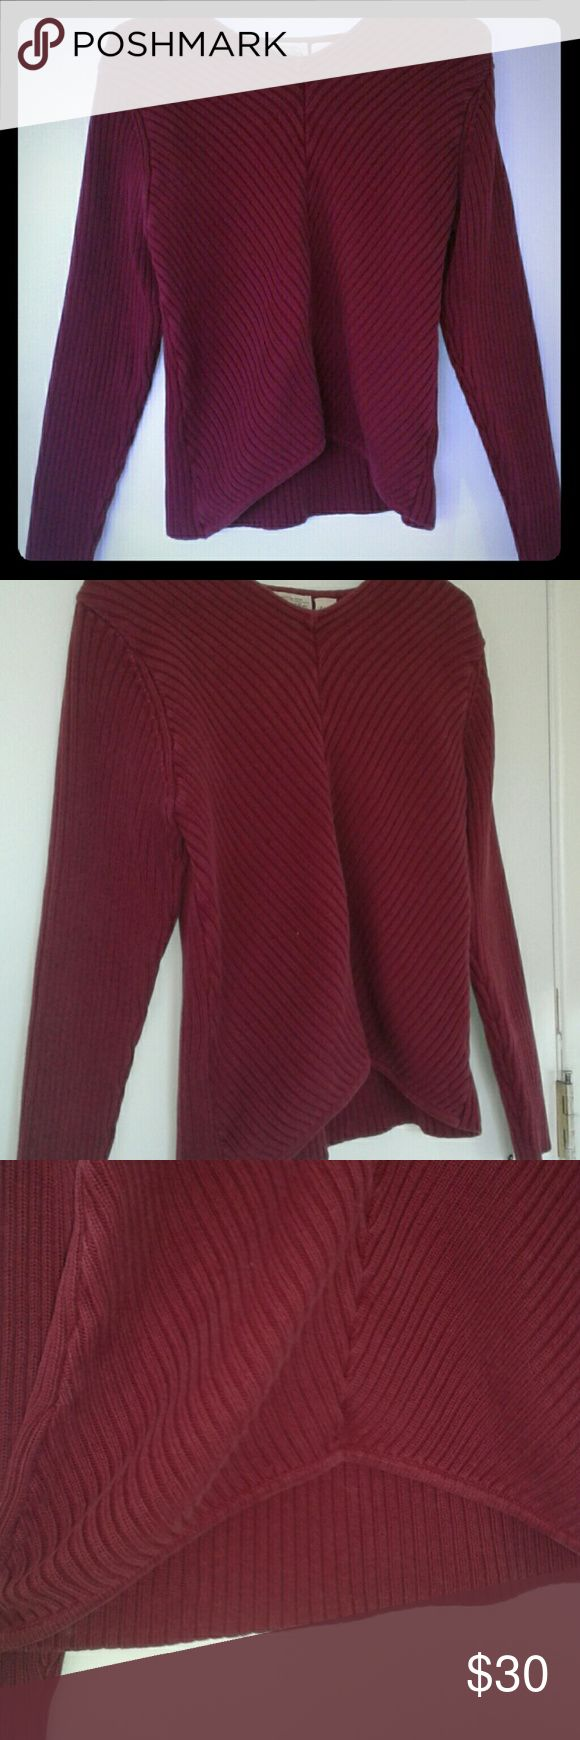 Maroon Sweater This is a thick and durable knit style sweater. Its nice as a layer, or on its own. There are some loose parts (pict 6) but it still holds up very well. The front is a little higher for added style. St. John's Bay Sweaters